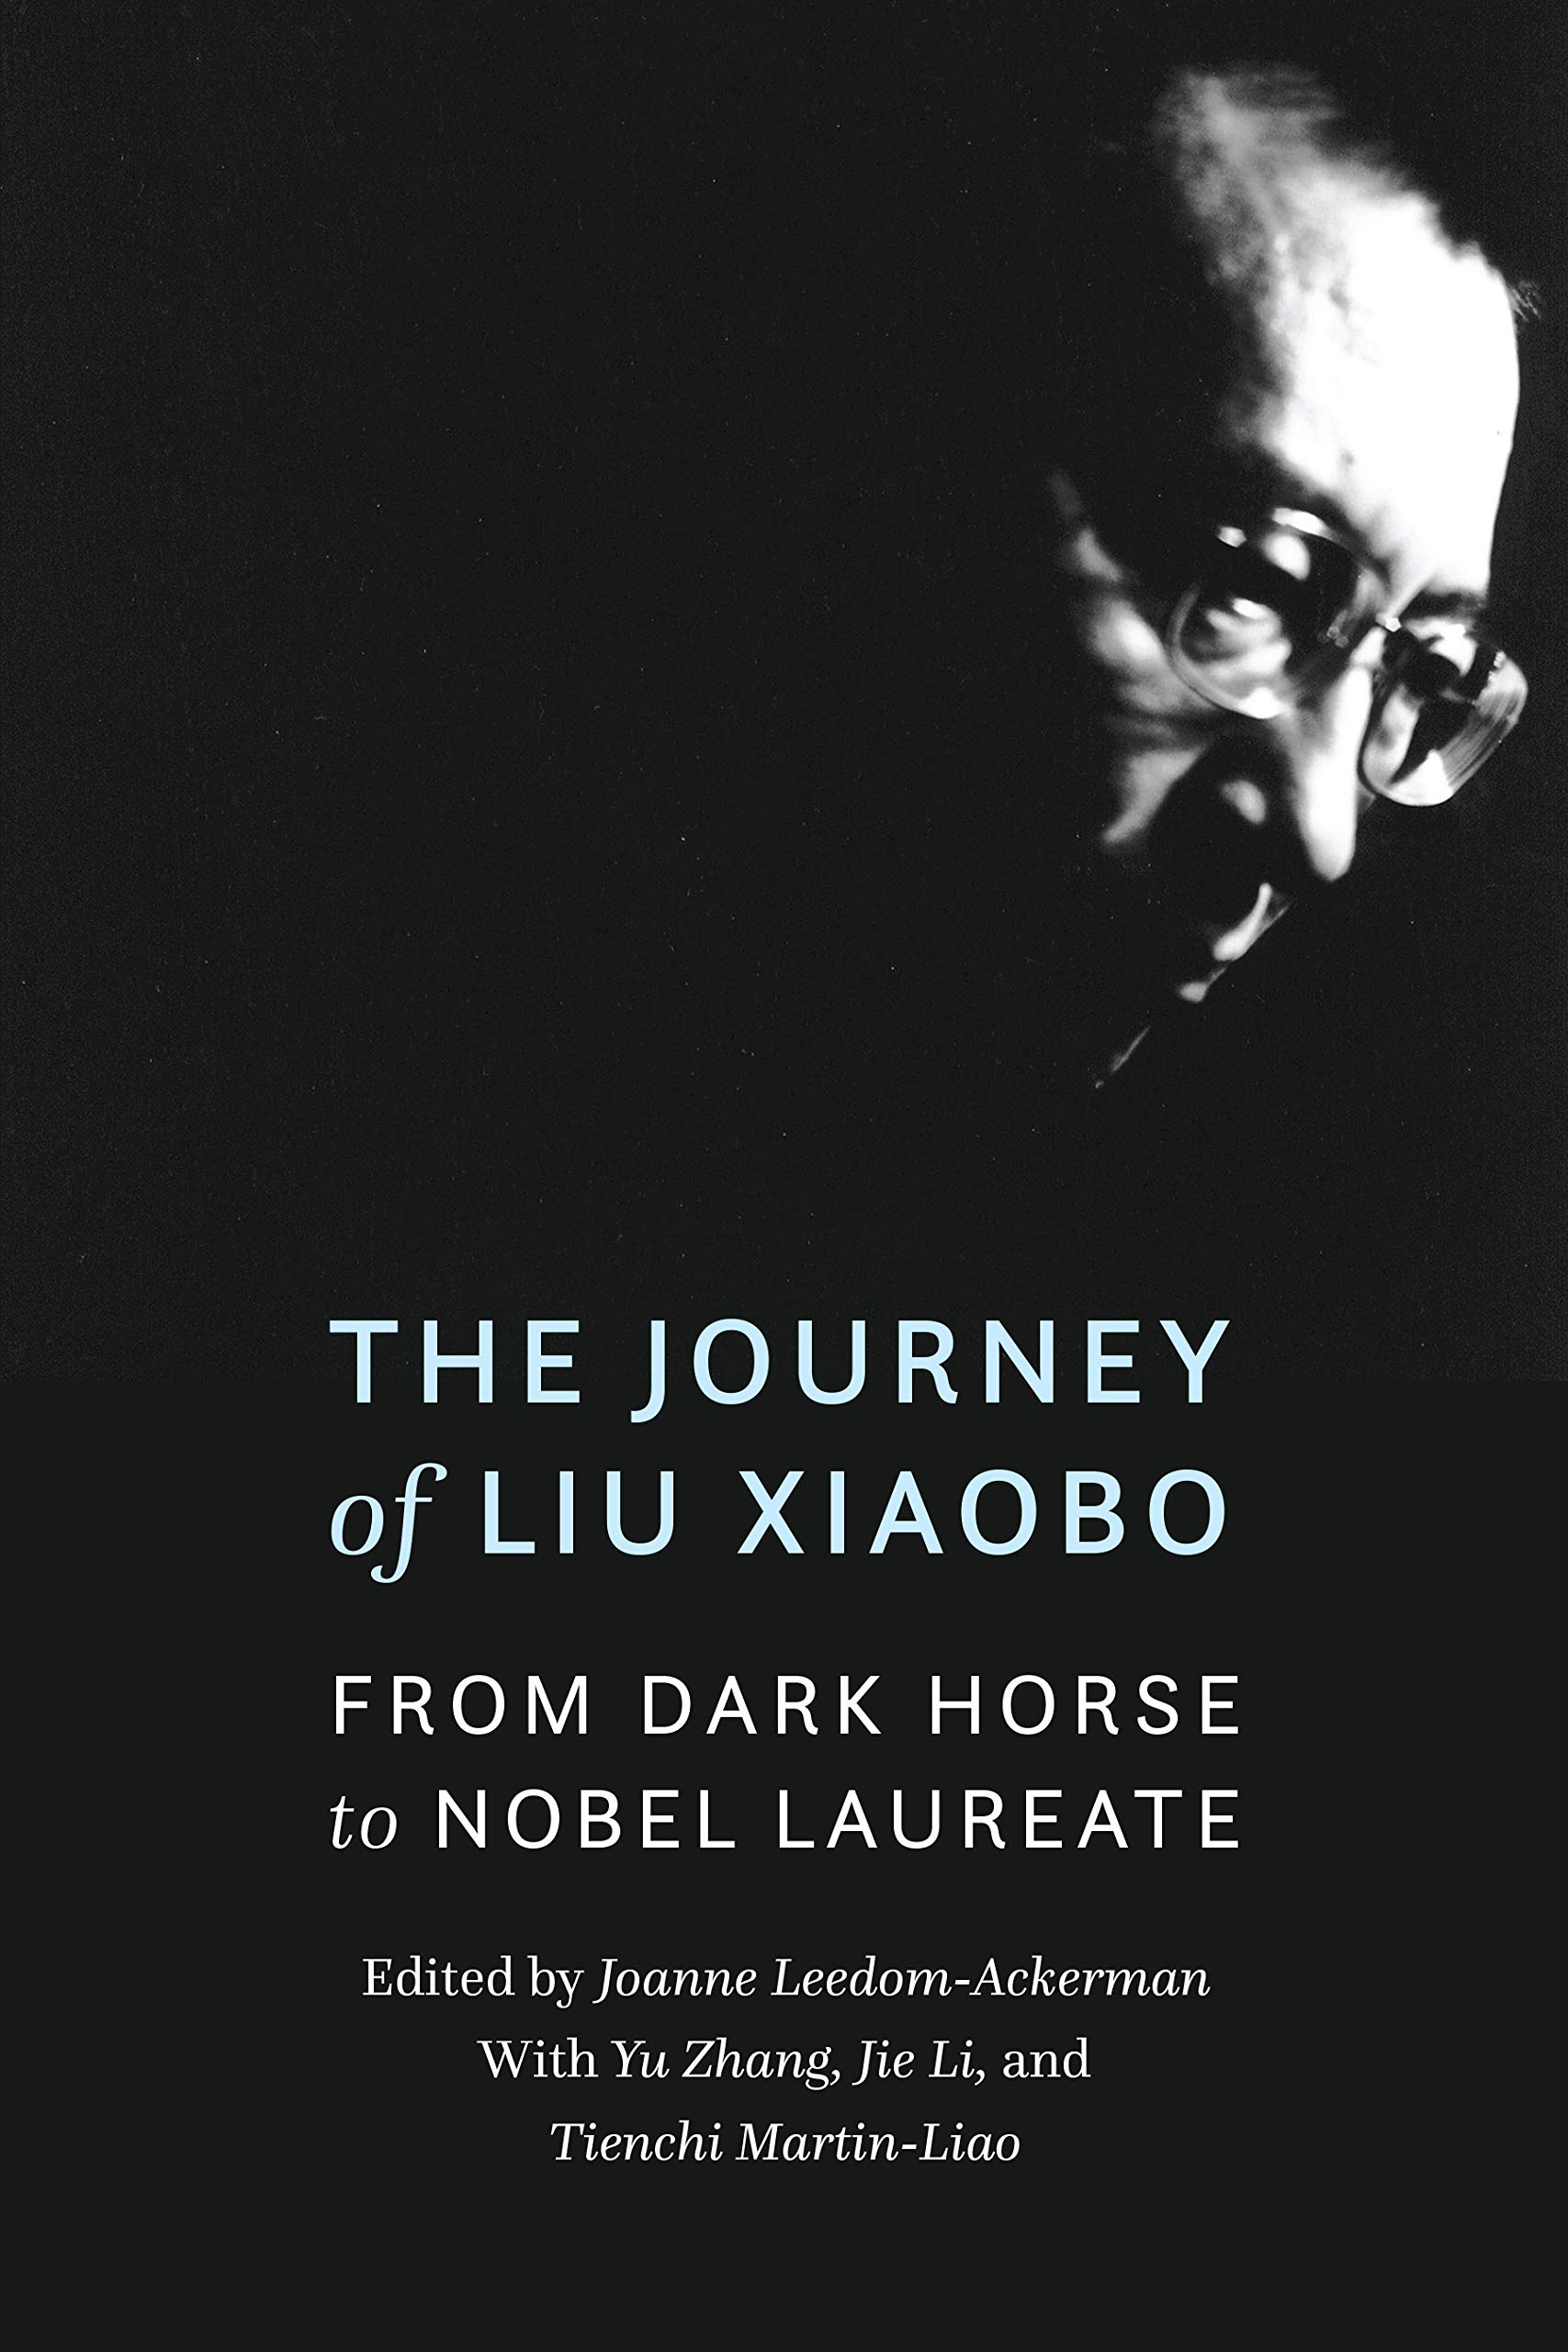 The Journey of Liu Xiaobo: From Dark Horse to Nobel Laureate